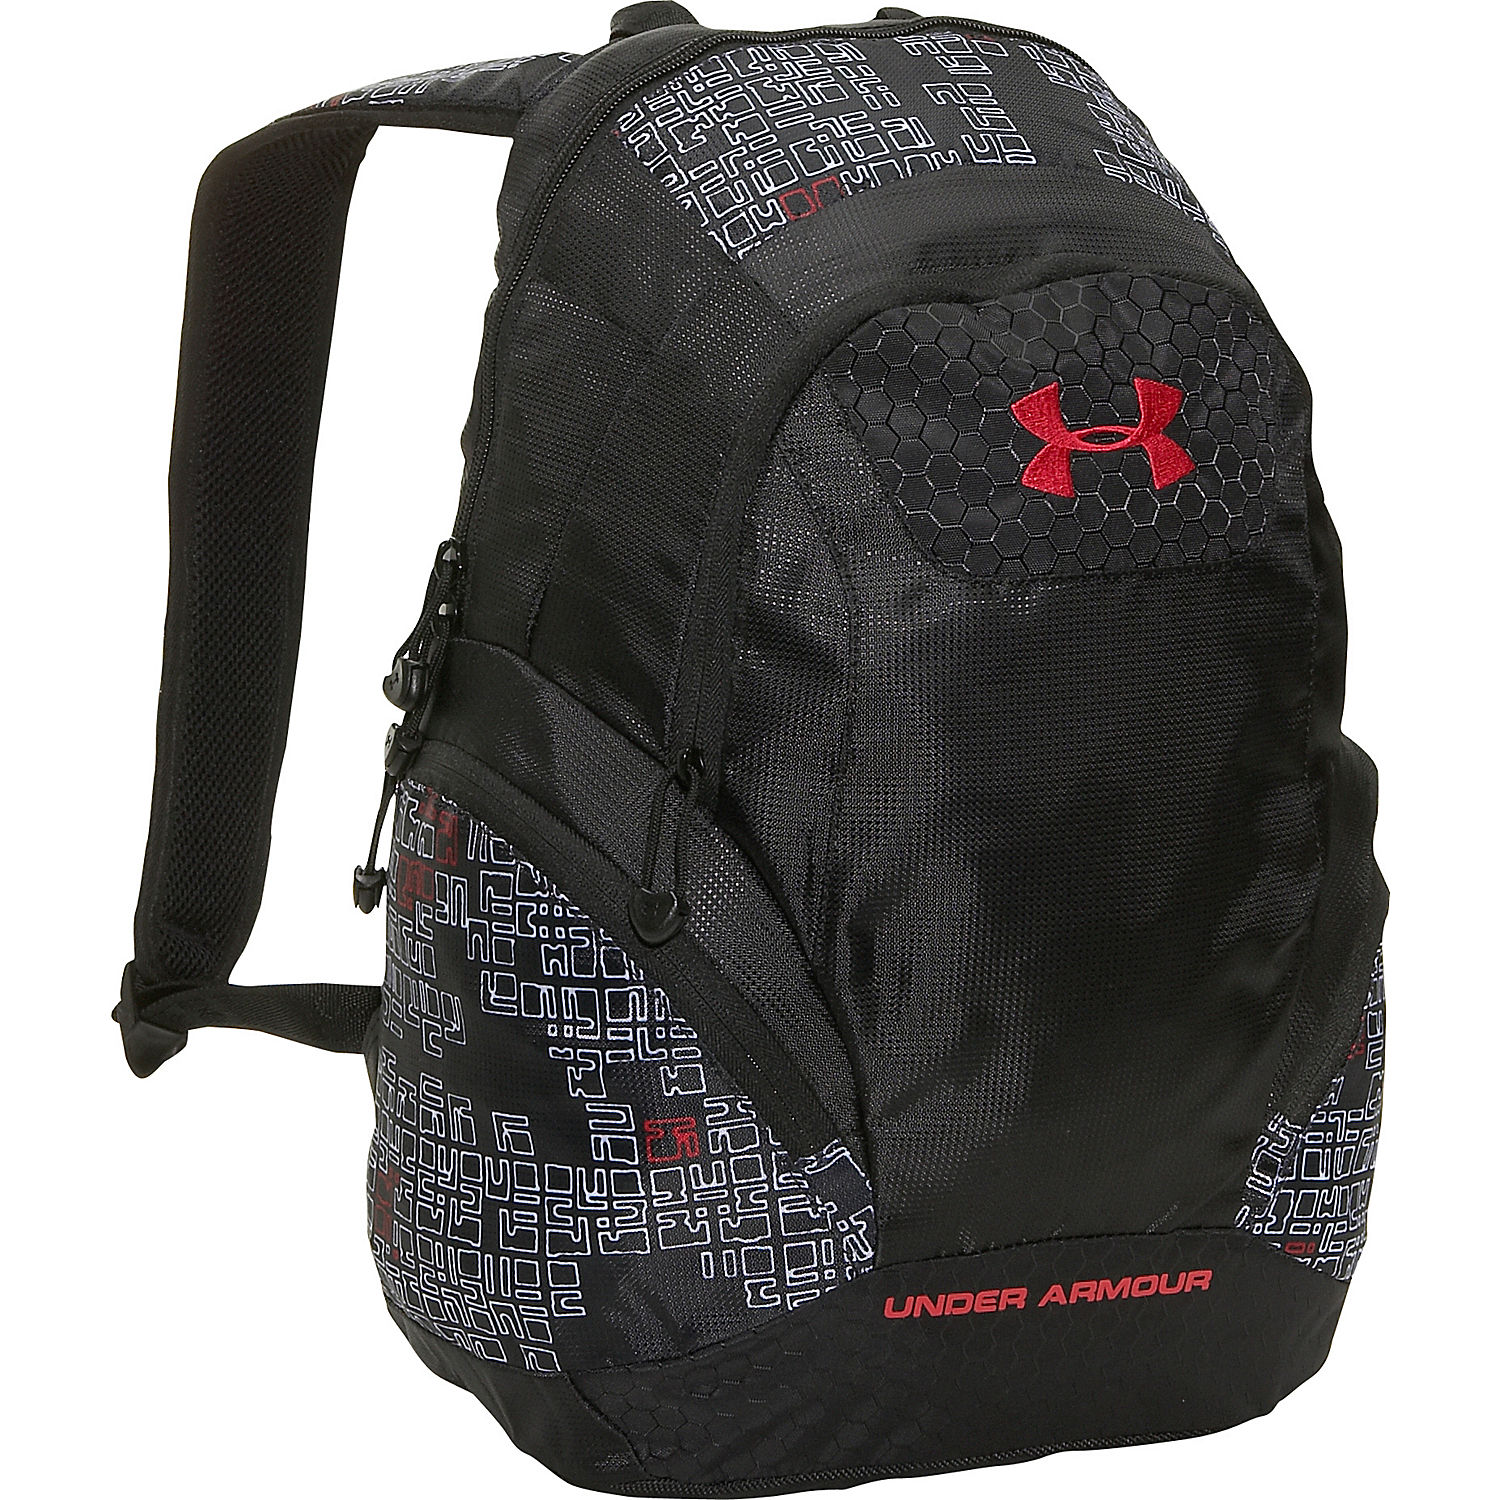 d11b07d194b8 Backpacks On Sale For Boys- Fenix Toulouse Handball